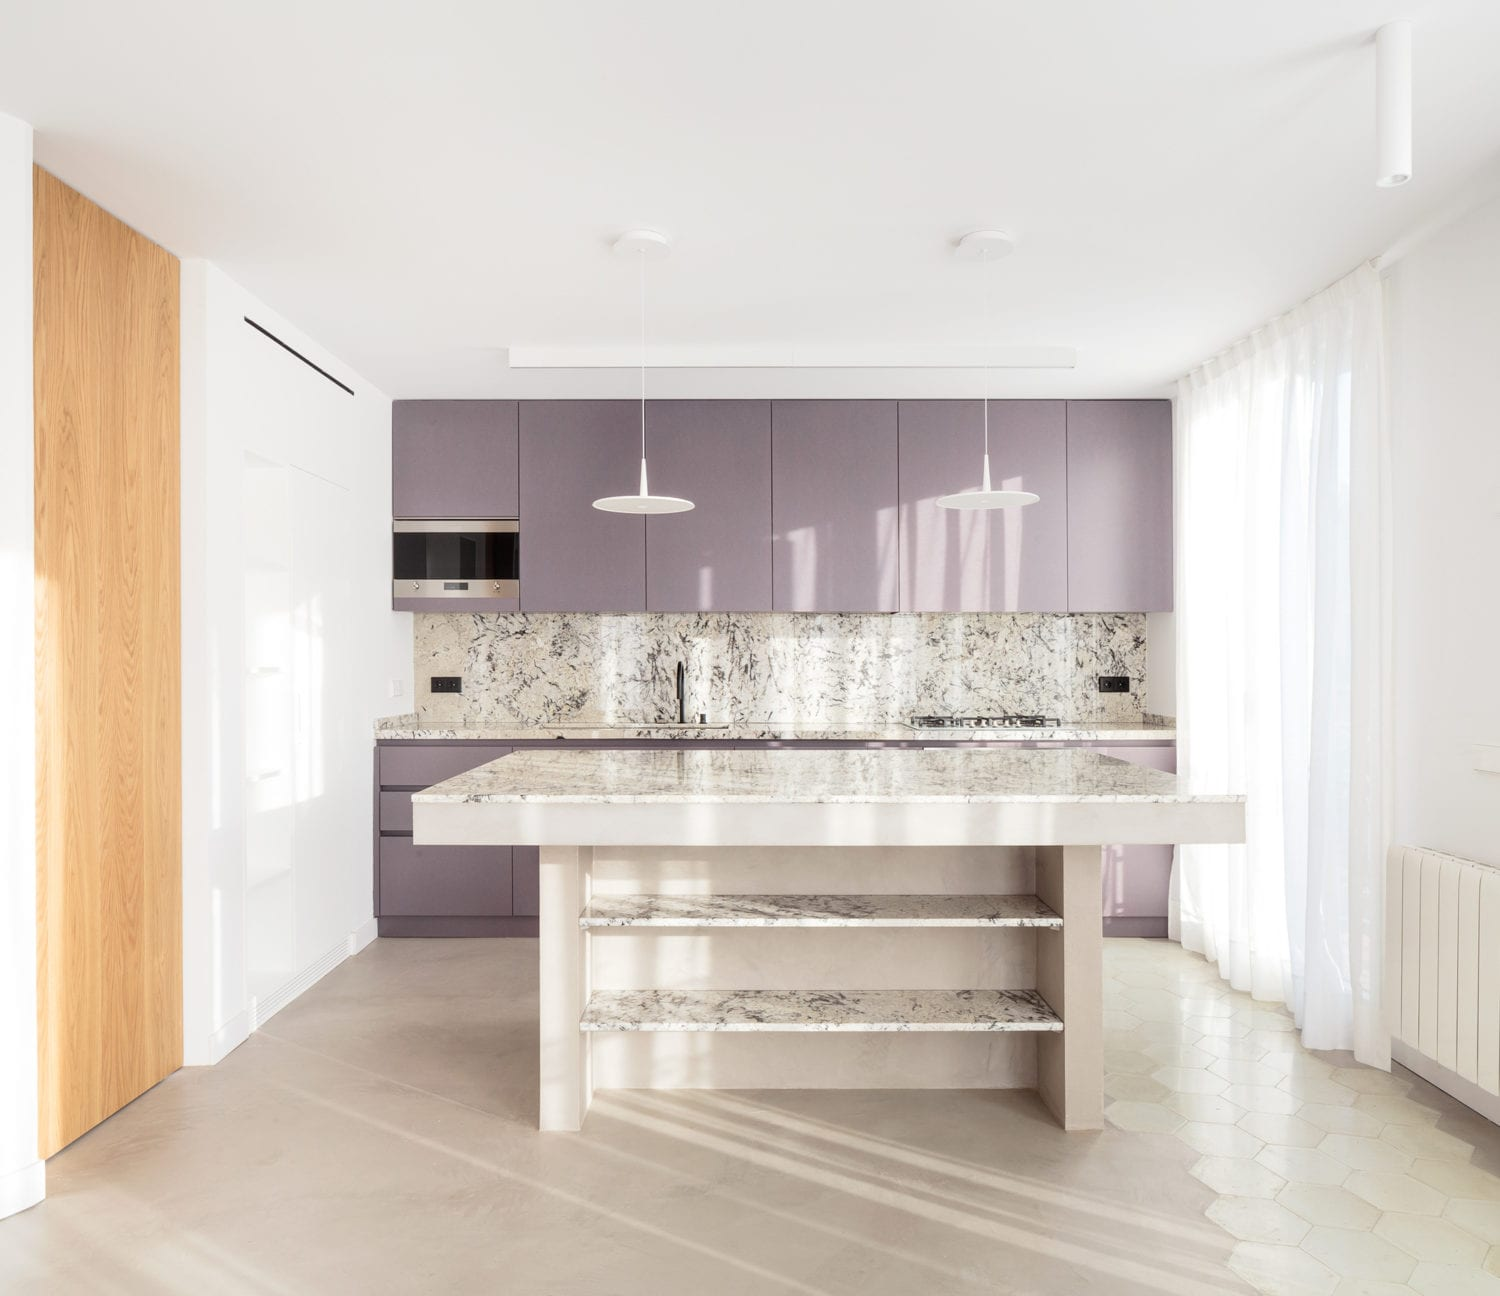 Atic Aribau Apartment Renovation in Barcelona by Raul Sanchez Architects | Yellowtrace